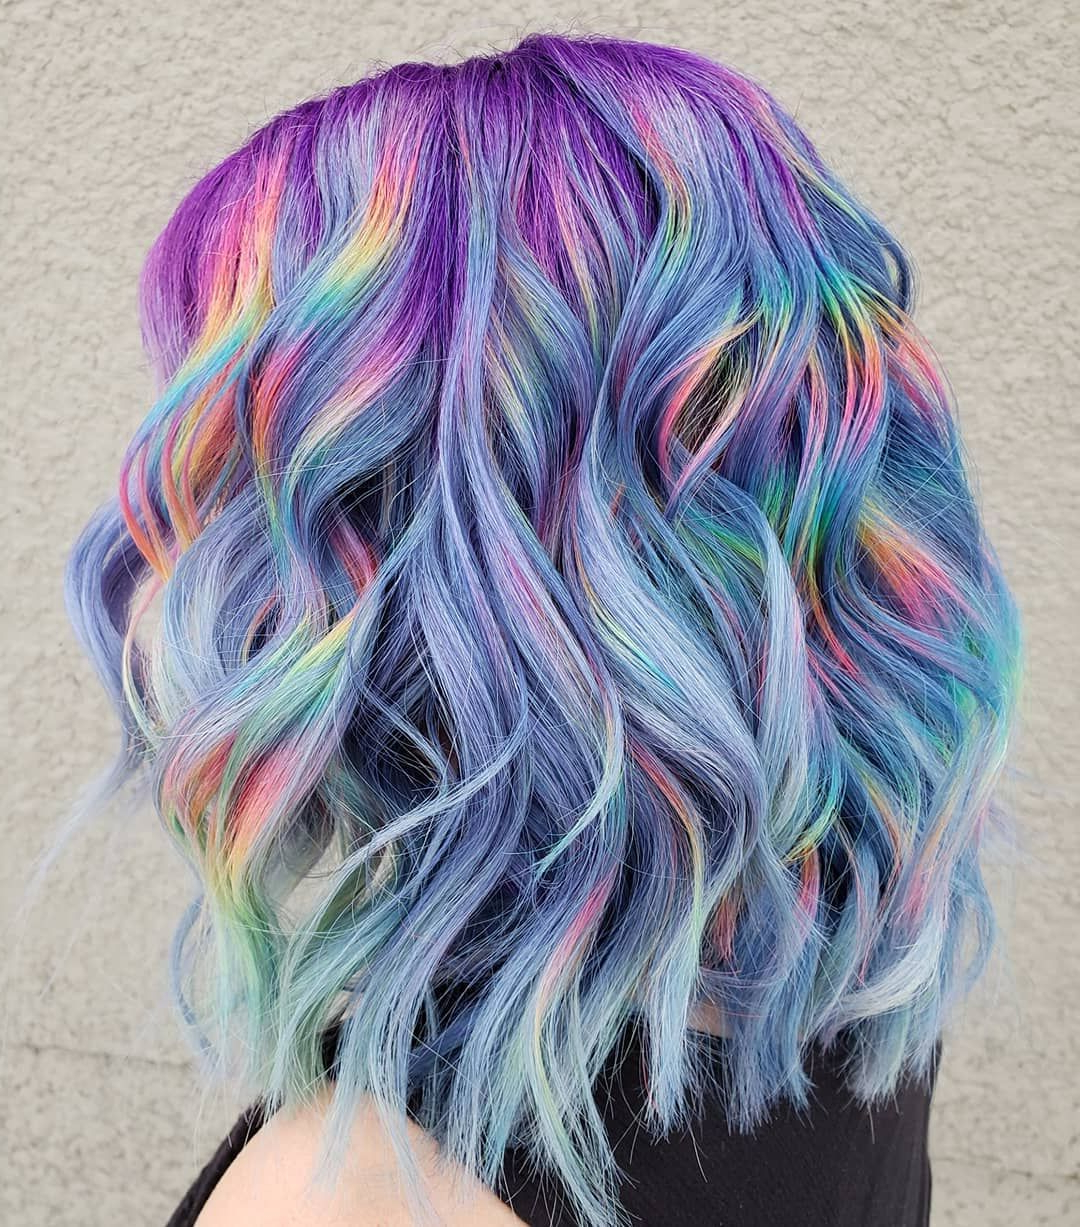 Fashionable Pastel Rainbow Colored Curls Hairstyles With Regard To @hairbymisskellyo (View 11 of 20)